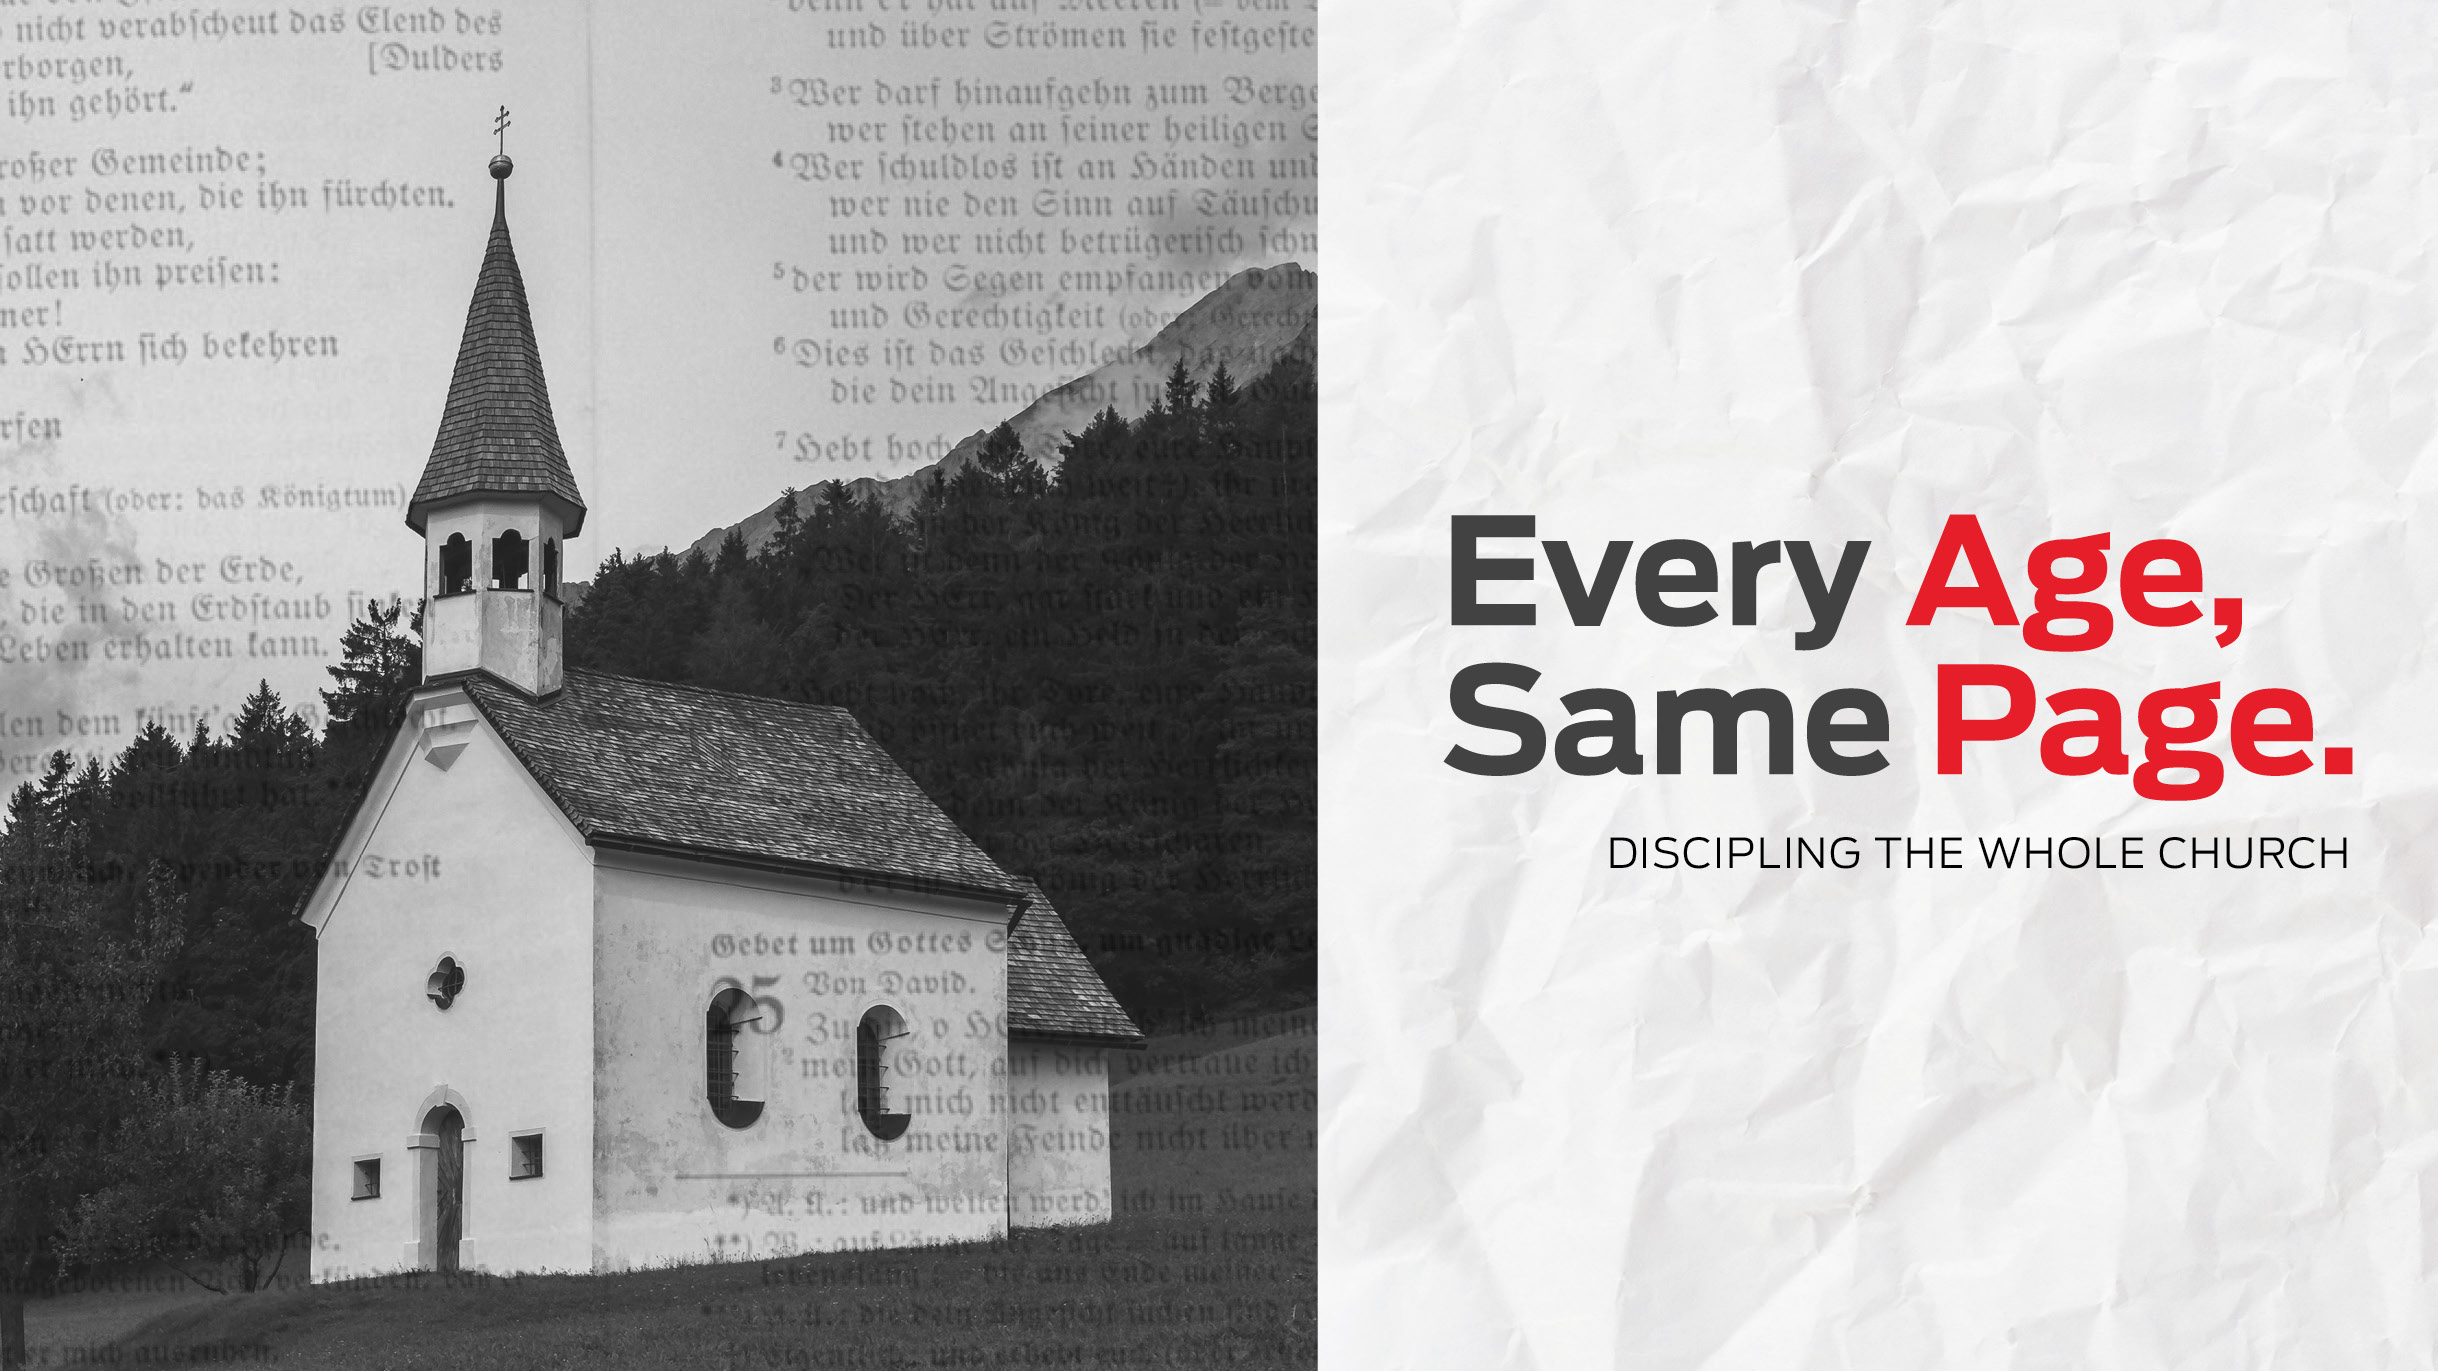 Every Age, Same Page: Discipling the Whole Church